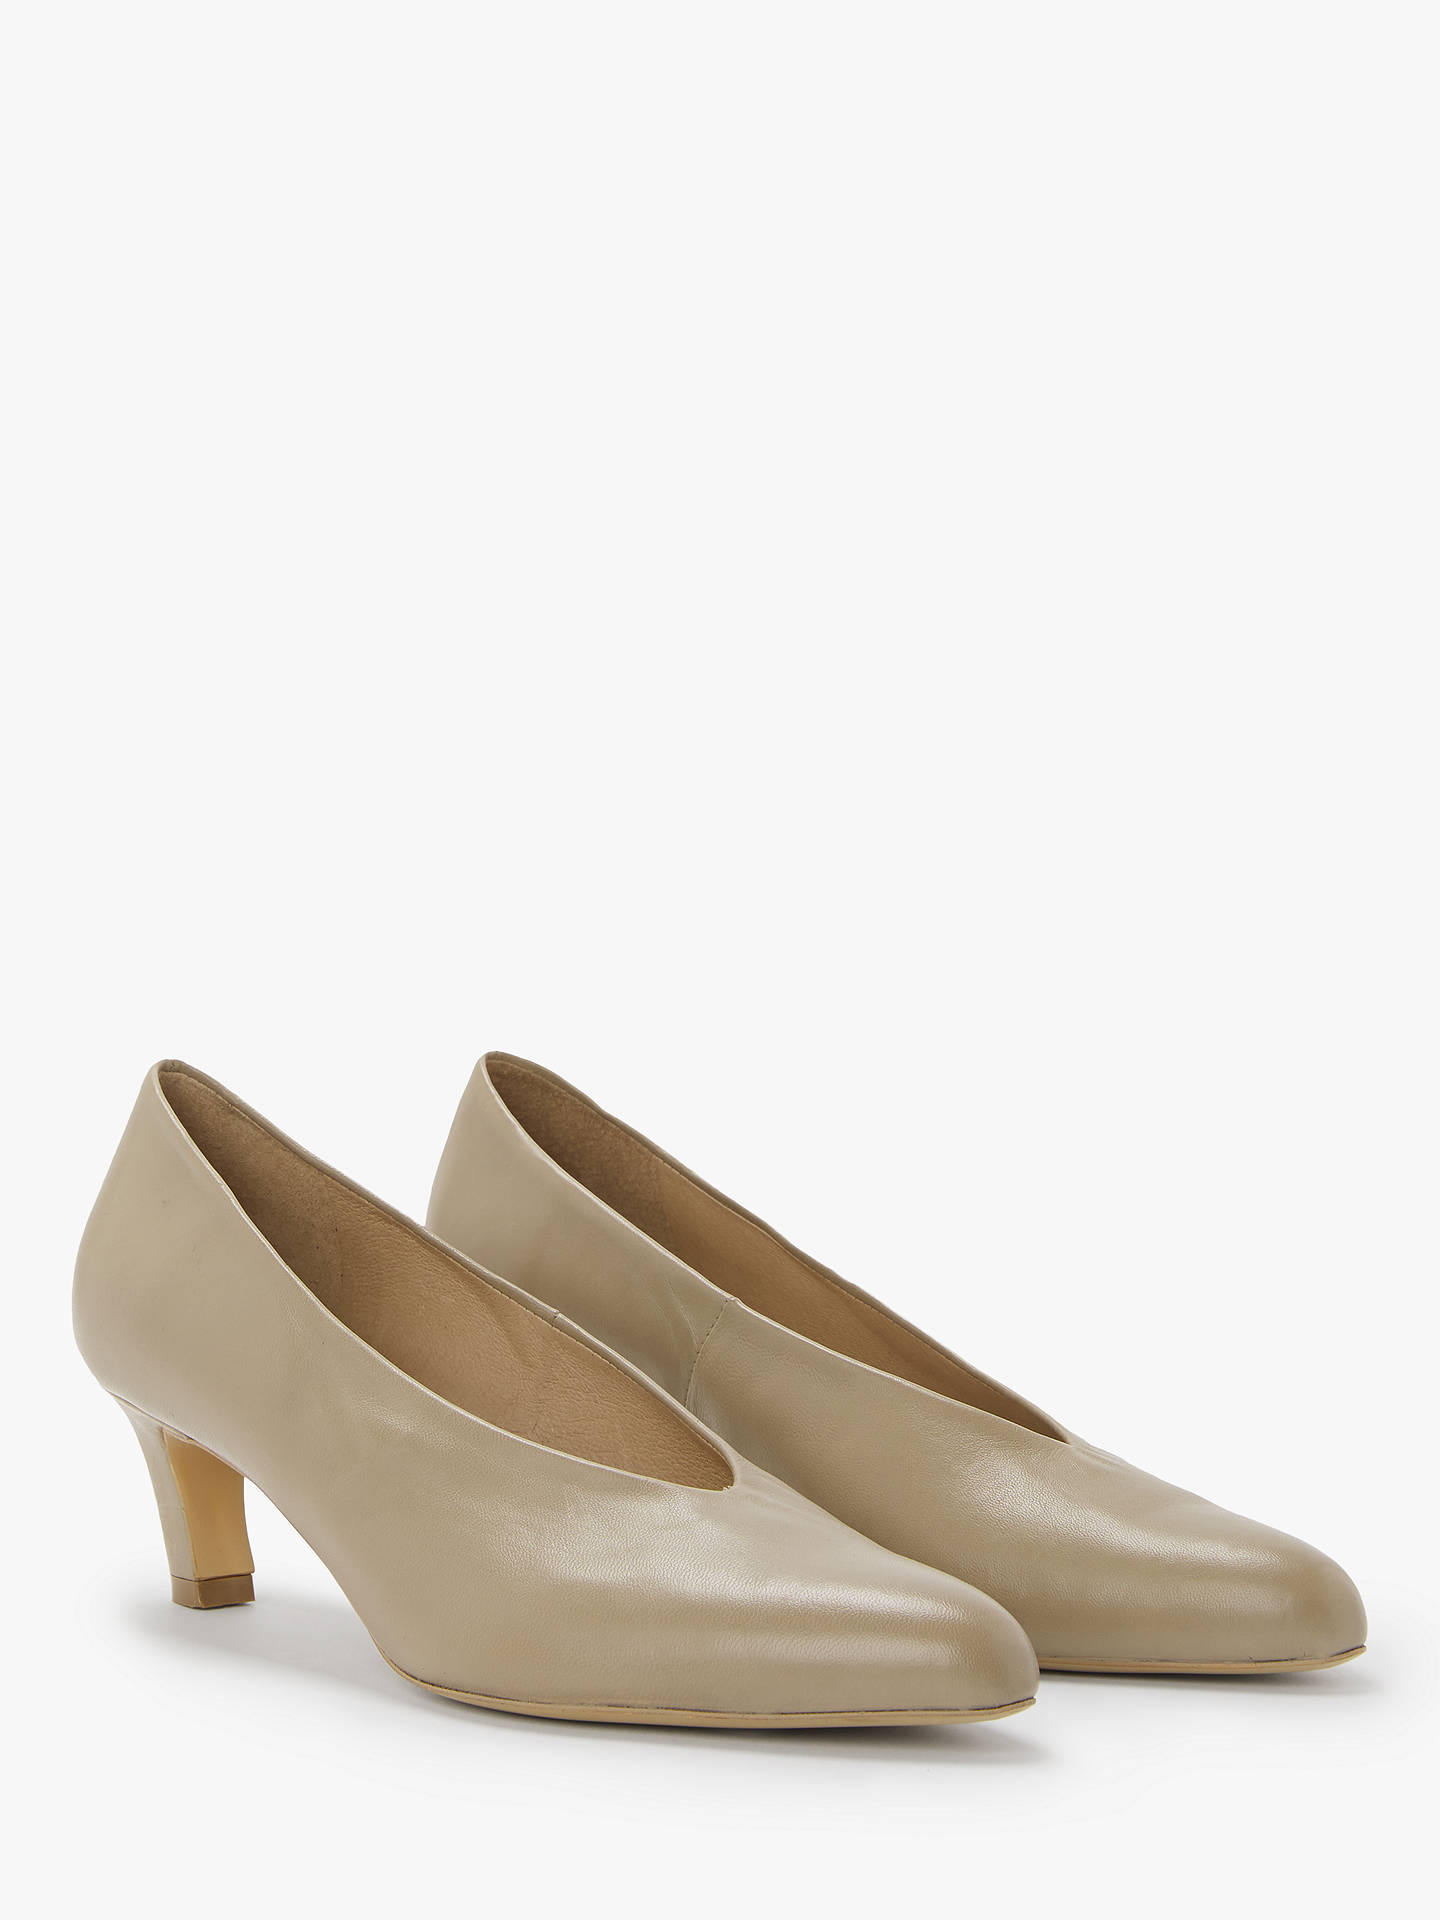 BuyModern Rarity Amber Kitten Heel Court Shoes, Beige, 5 Online at johnlewis.com